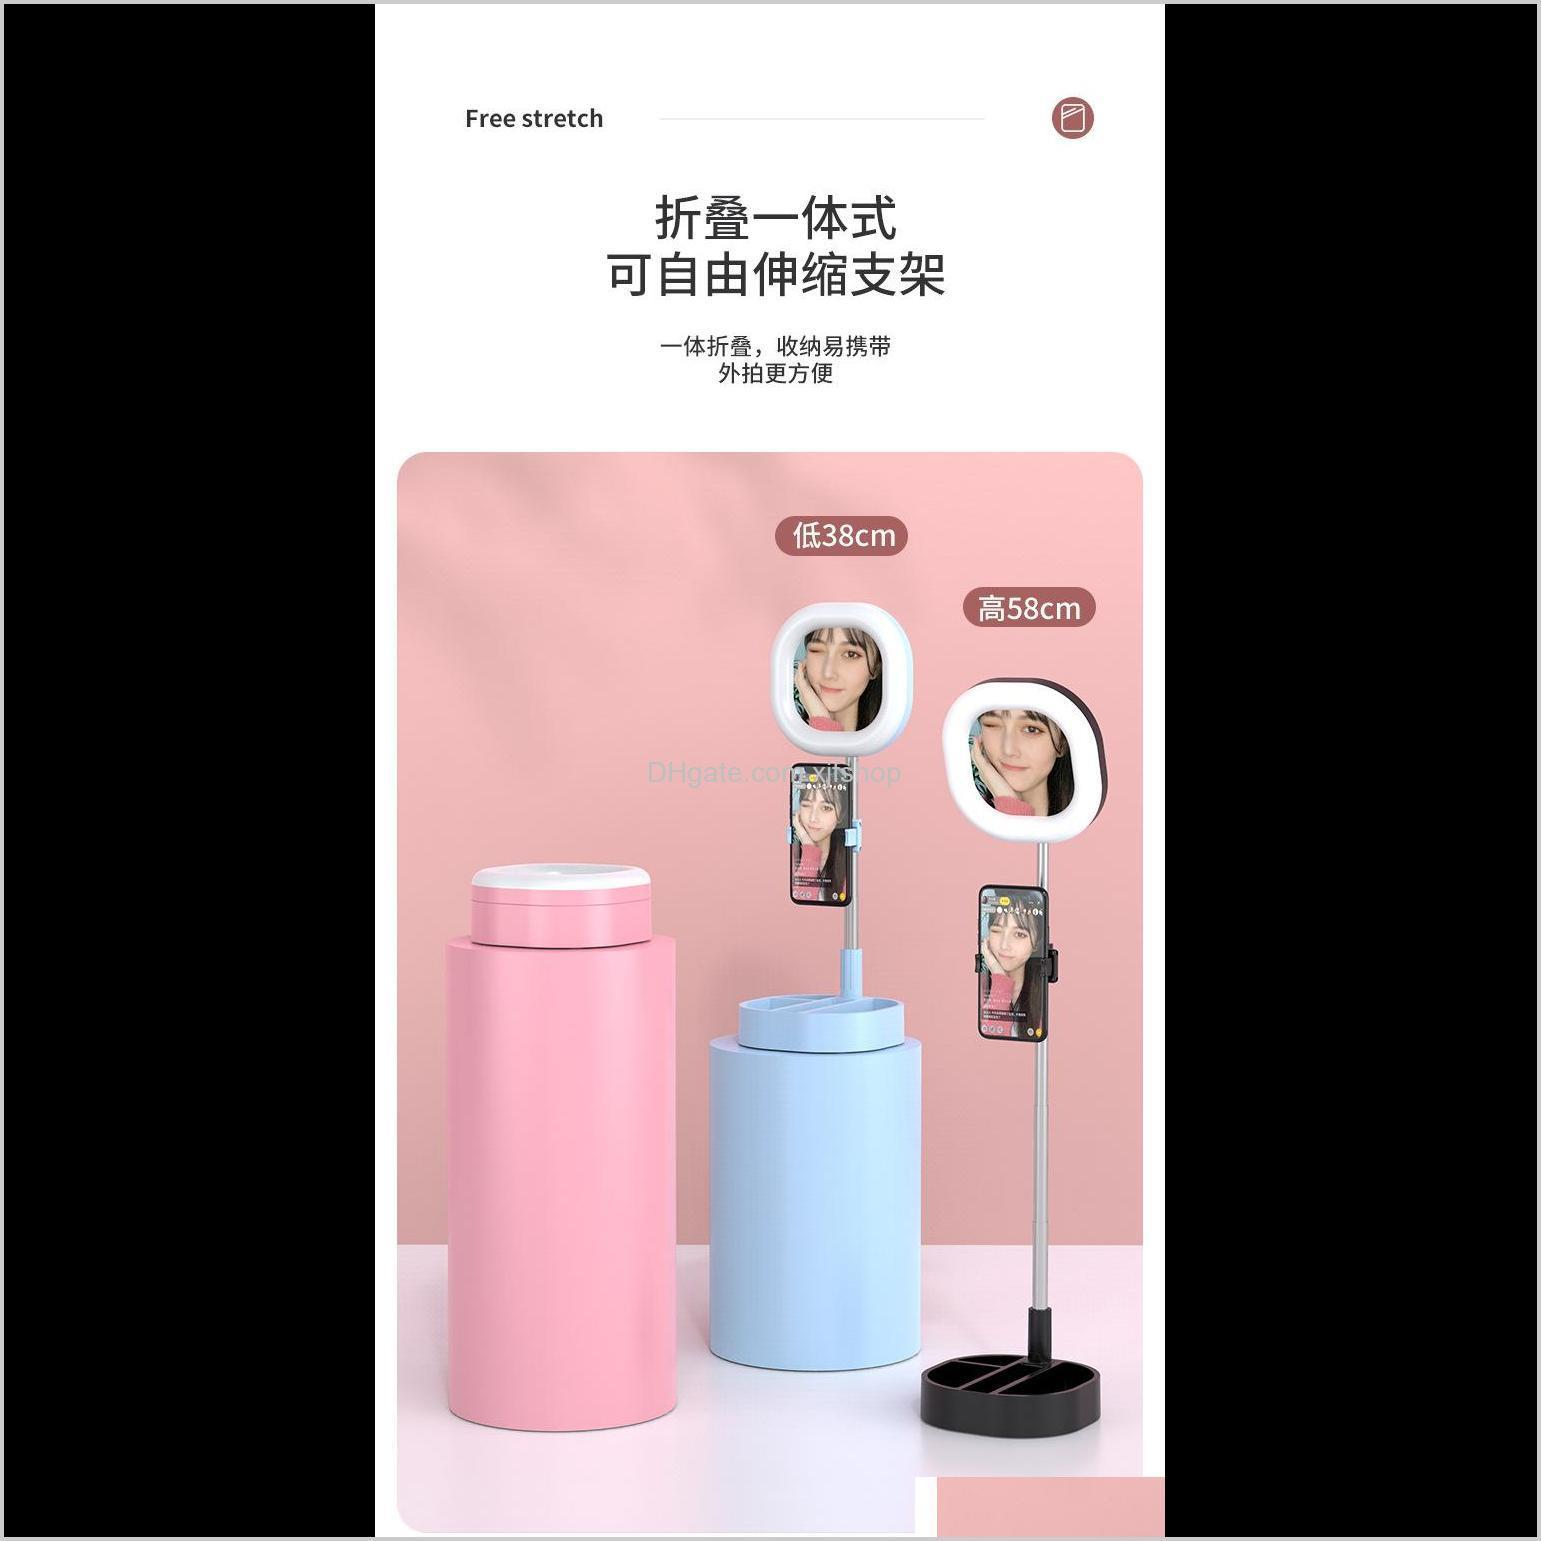 cell phone y3 led ring light 5w-15w 3500-6000k 3 color selfie ring lamp photographic live beauty lighting with tripod clamp standard